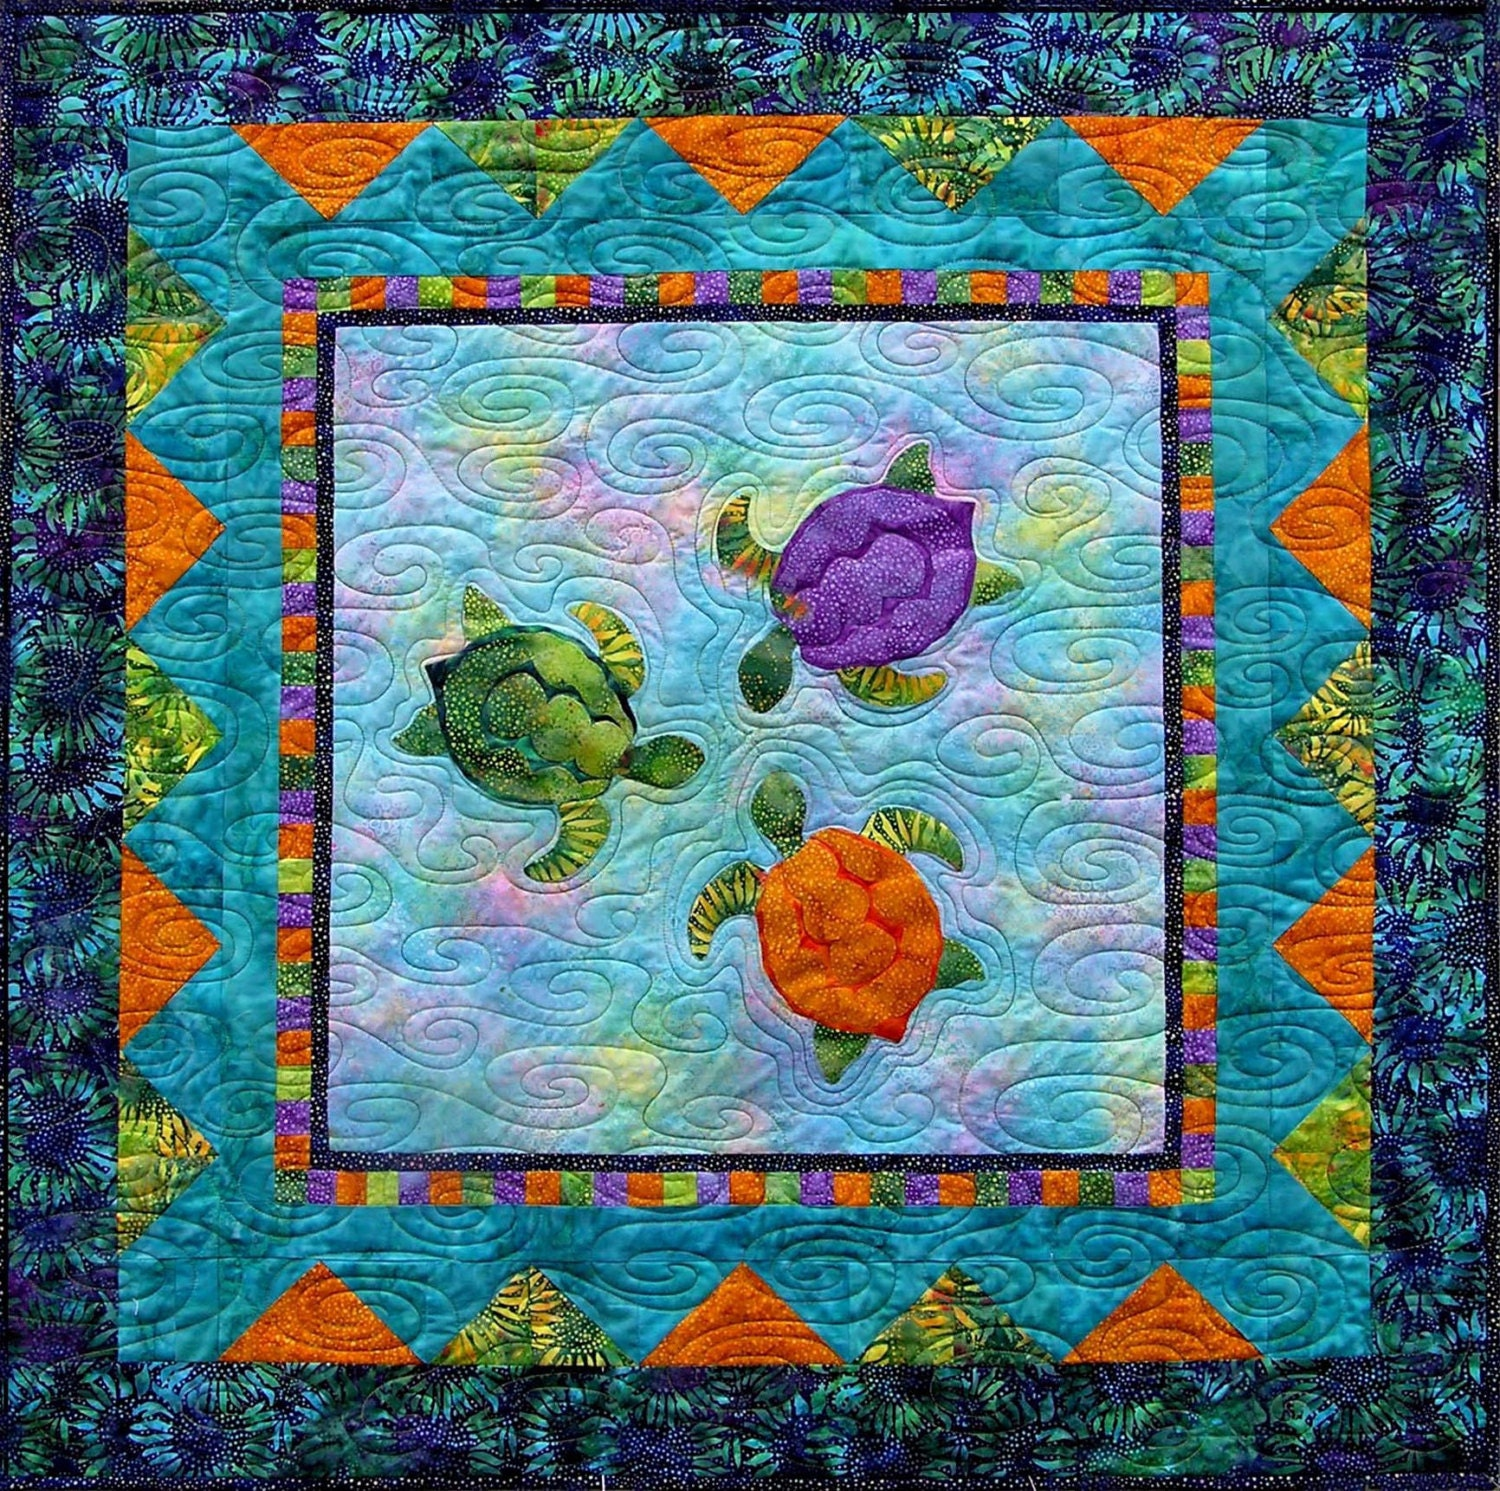 Quilt Patterns With Turtles : Chandeliers & Pendant Lights